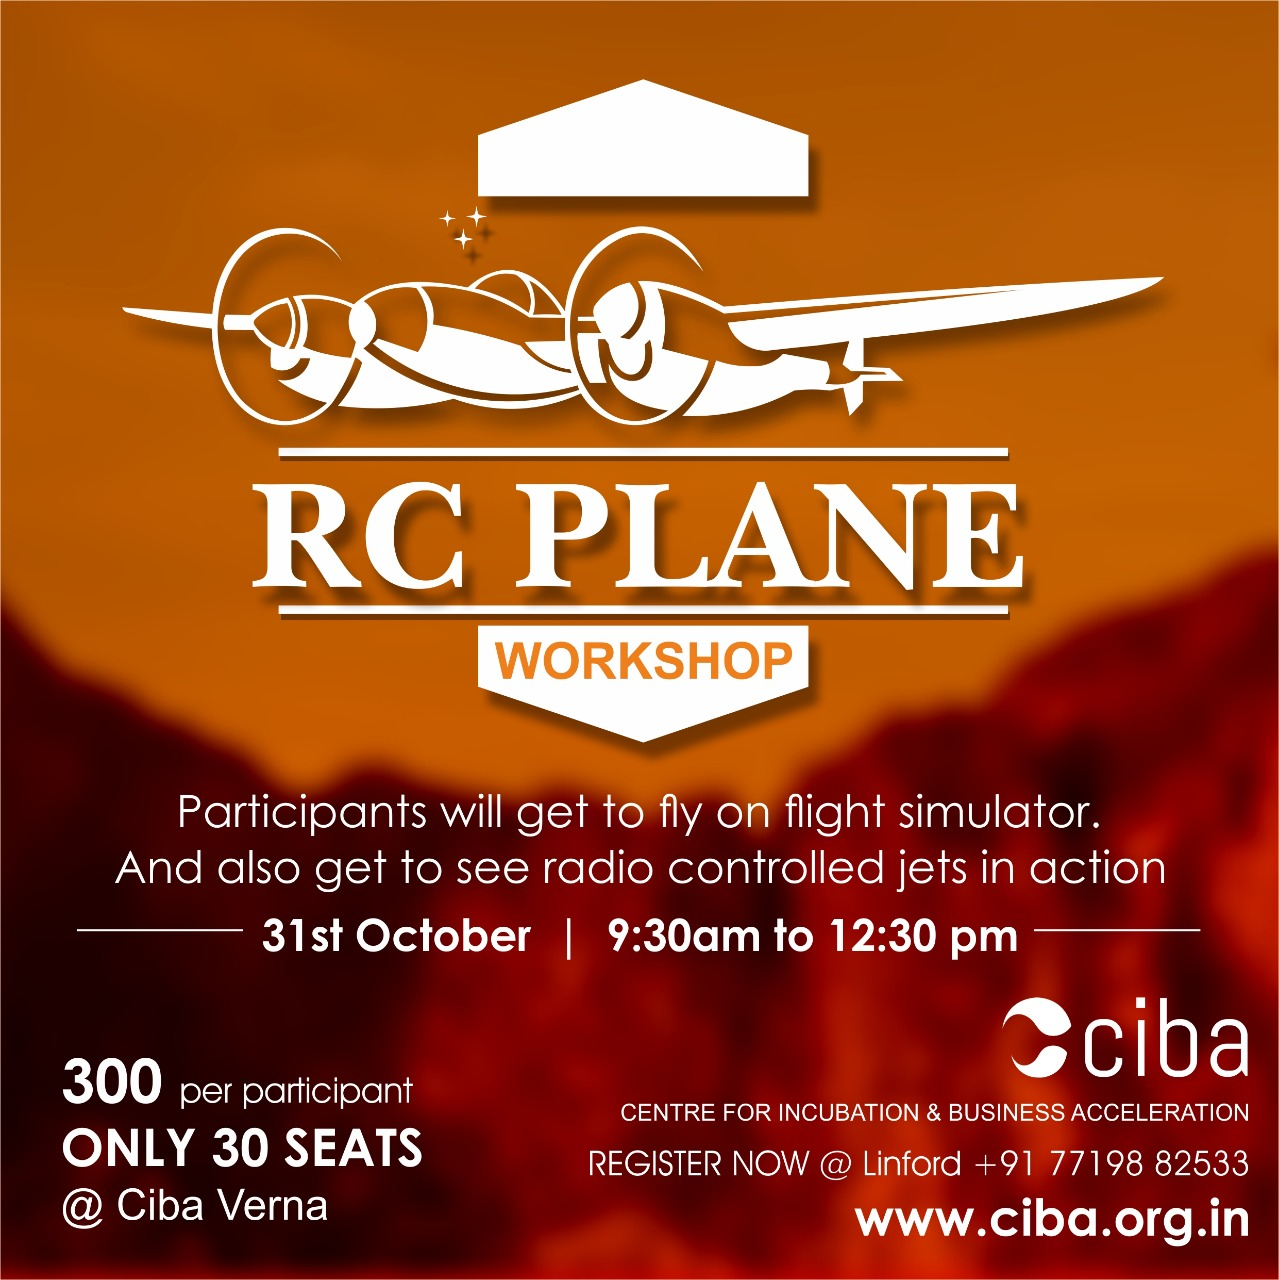 ciba-RC PLANE WORKSHOP